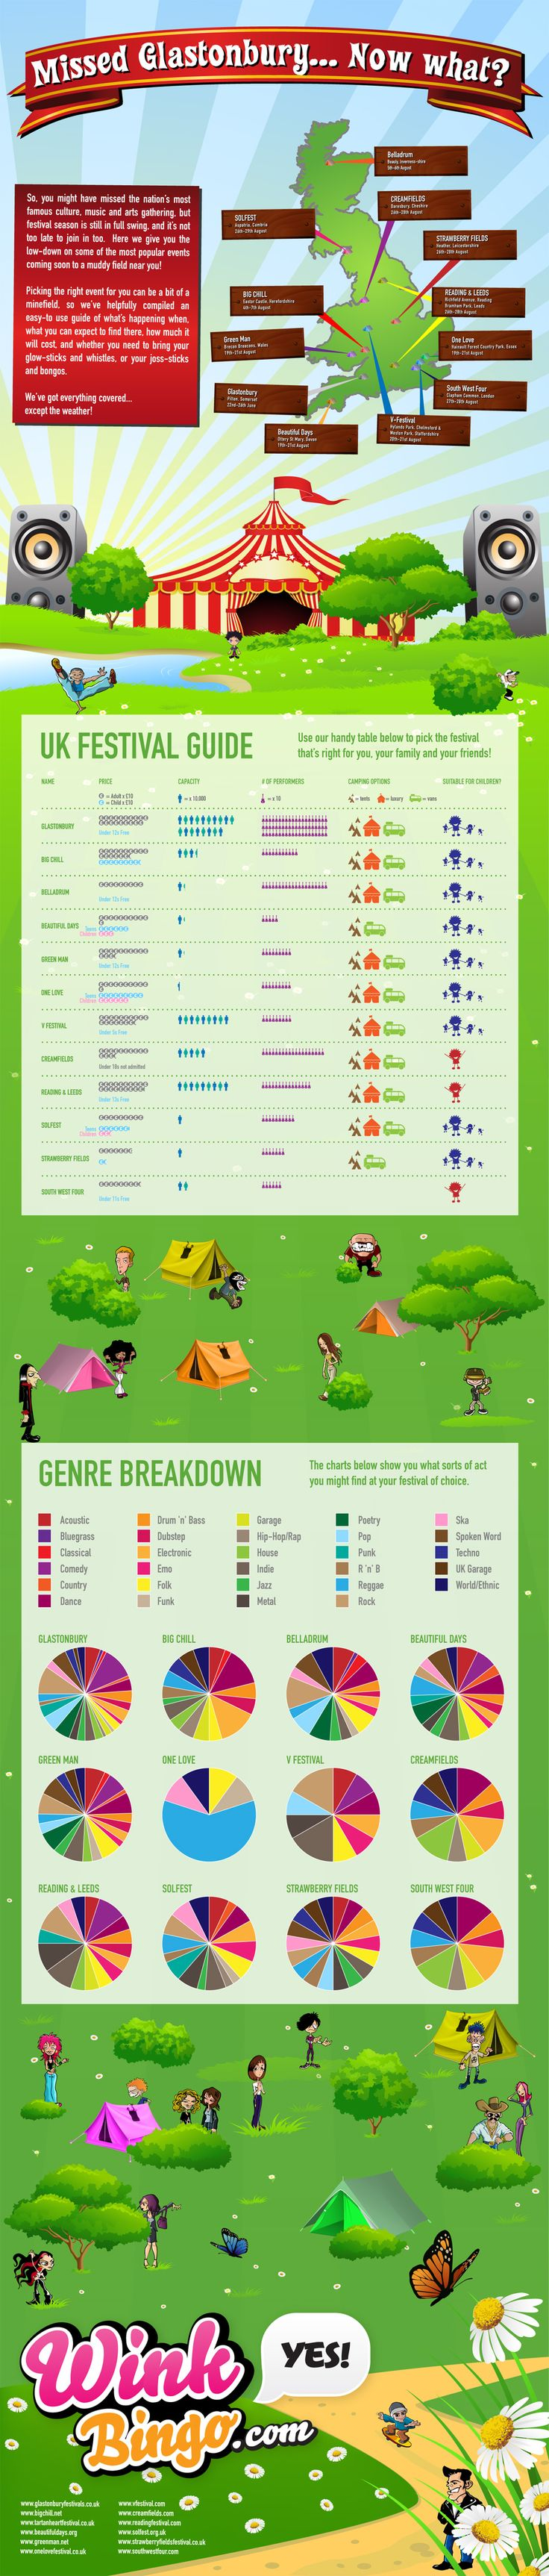 UK festival guide 2011. Still useful breakdown of types / ages that you will find in 2015.